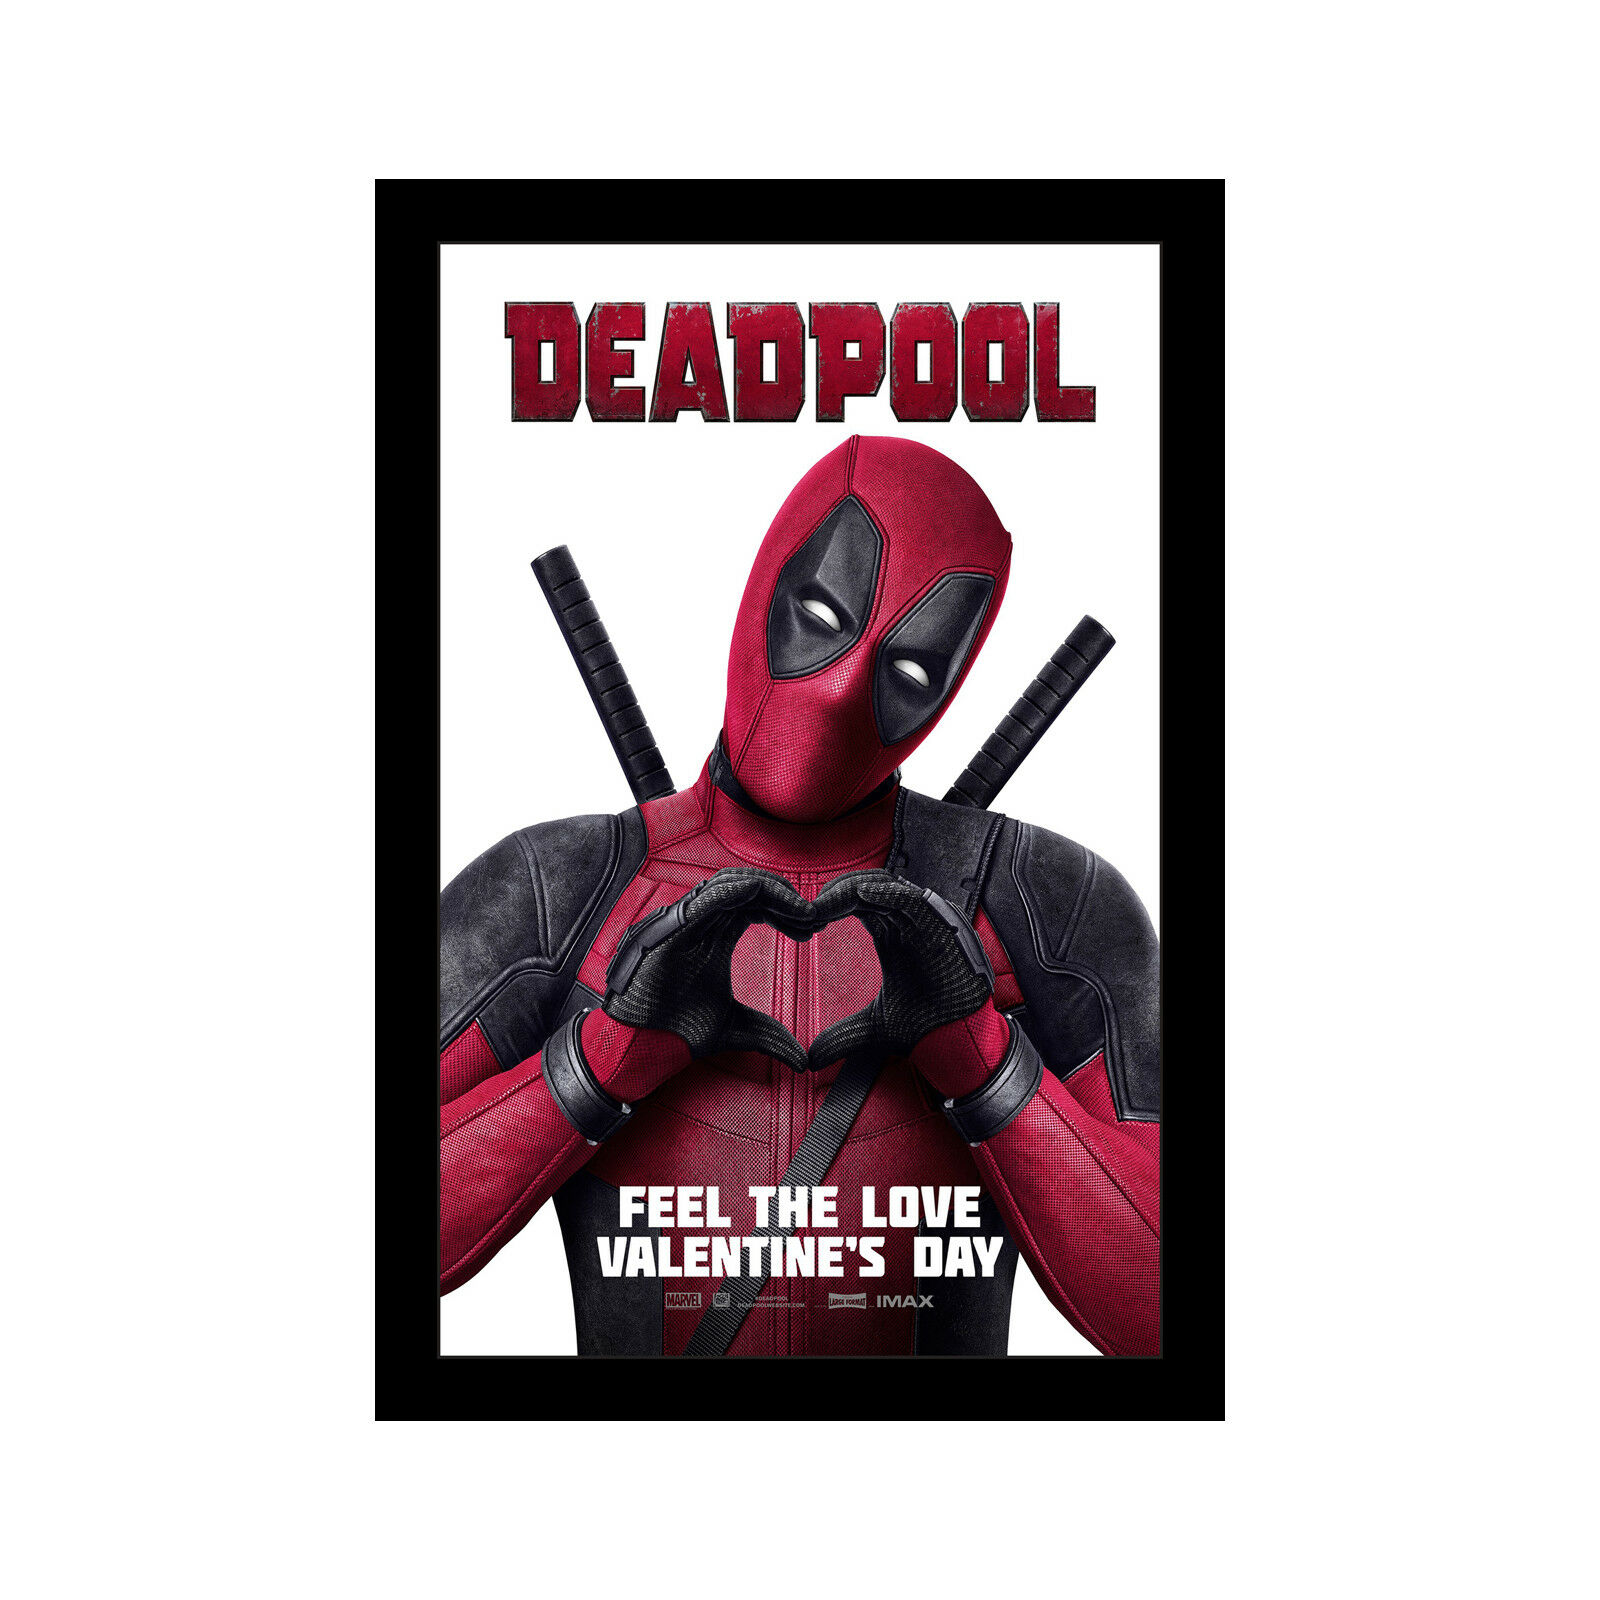 DEADPOOL - 11x17 Framed Movie Poster by Wallspace